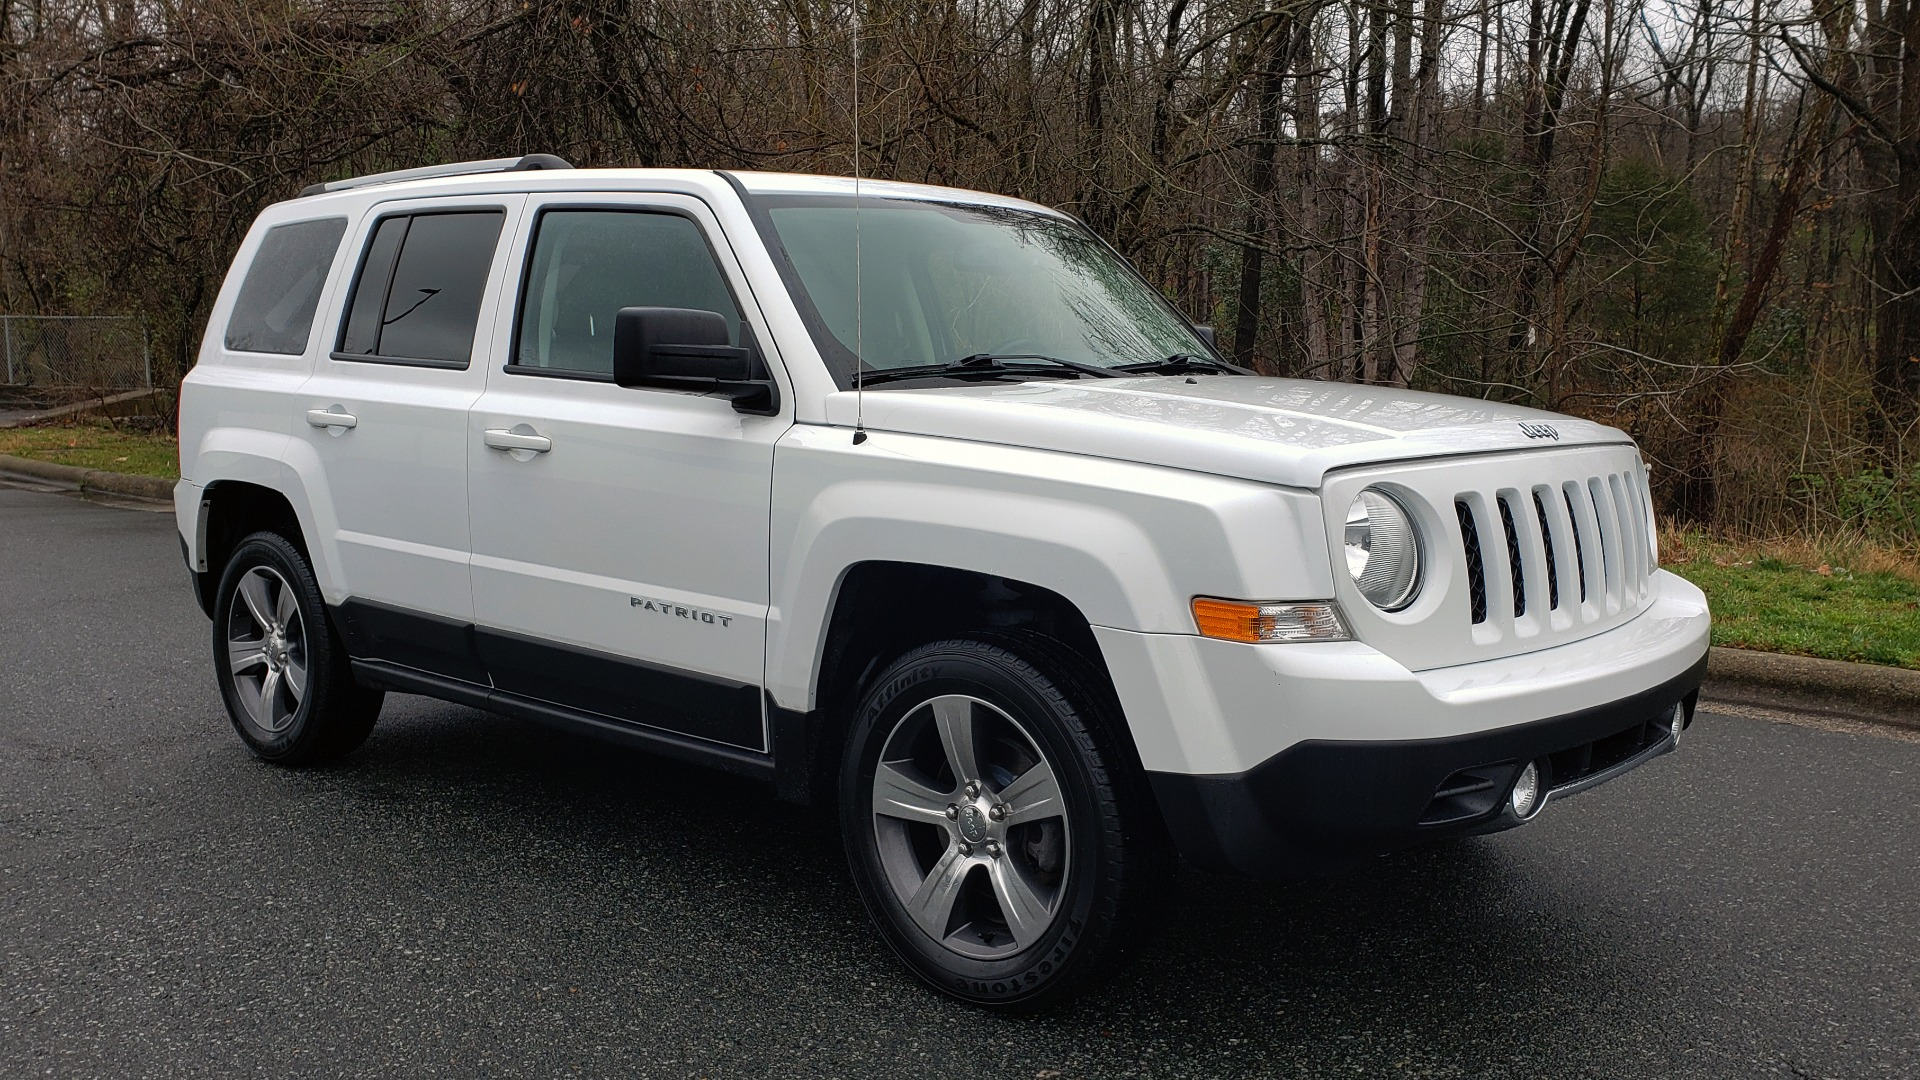 Used 2016 Jeep PATRIOT HIGH ALTITUDE EDITION 4WD / SUNROOF / 4-CYL / 6-SPD AUTO for sale $14,695 at Formula Imports in Charlotte NC 28227 4